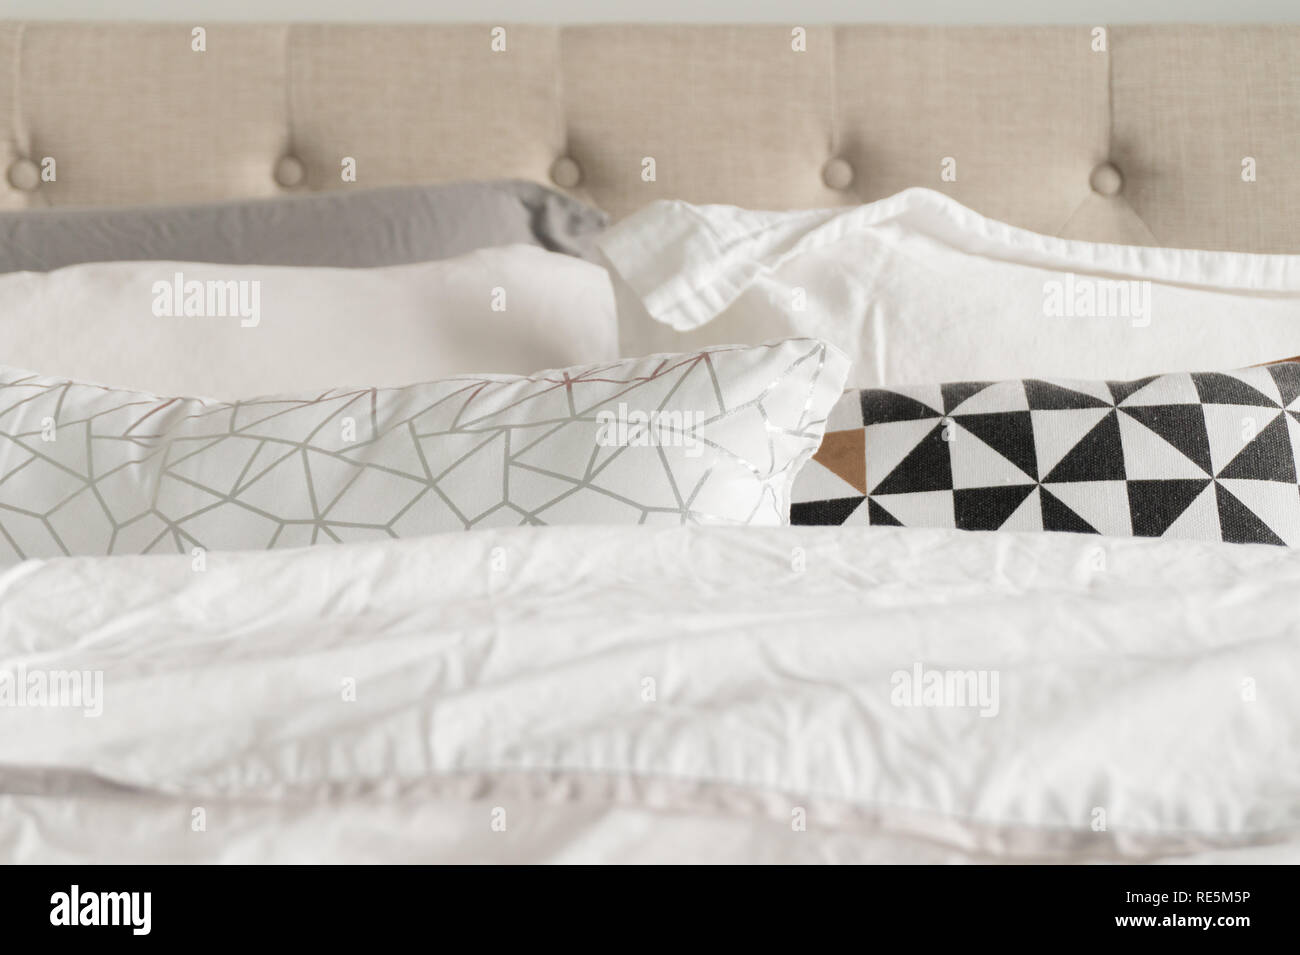 Black Headboard White Pillow High Resolution Stock Photography And Images Alamy